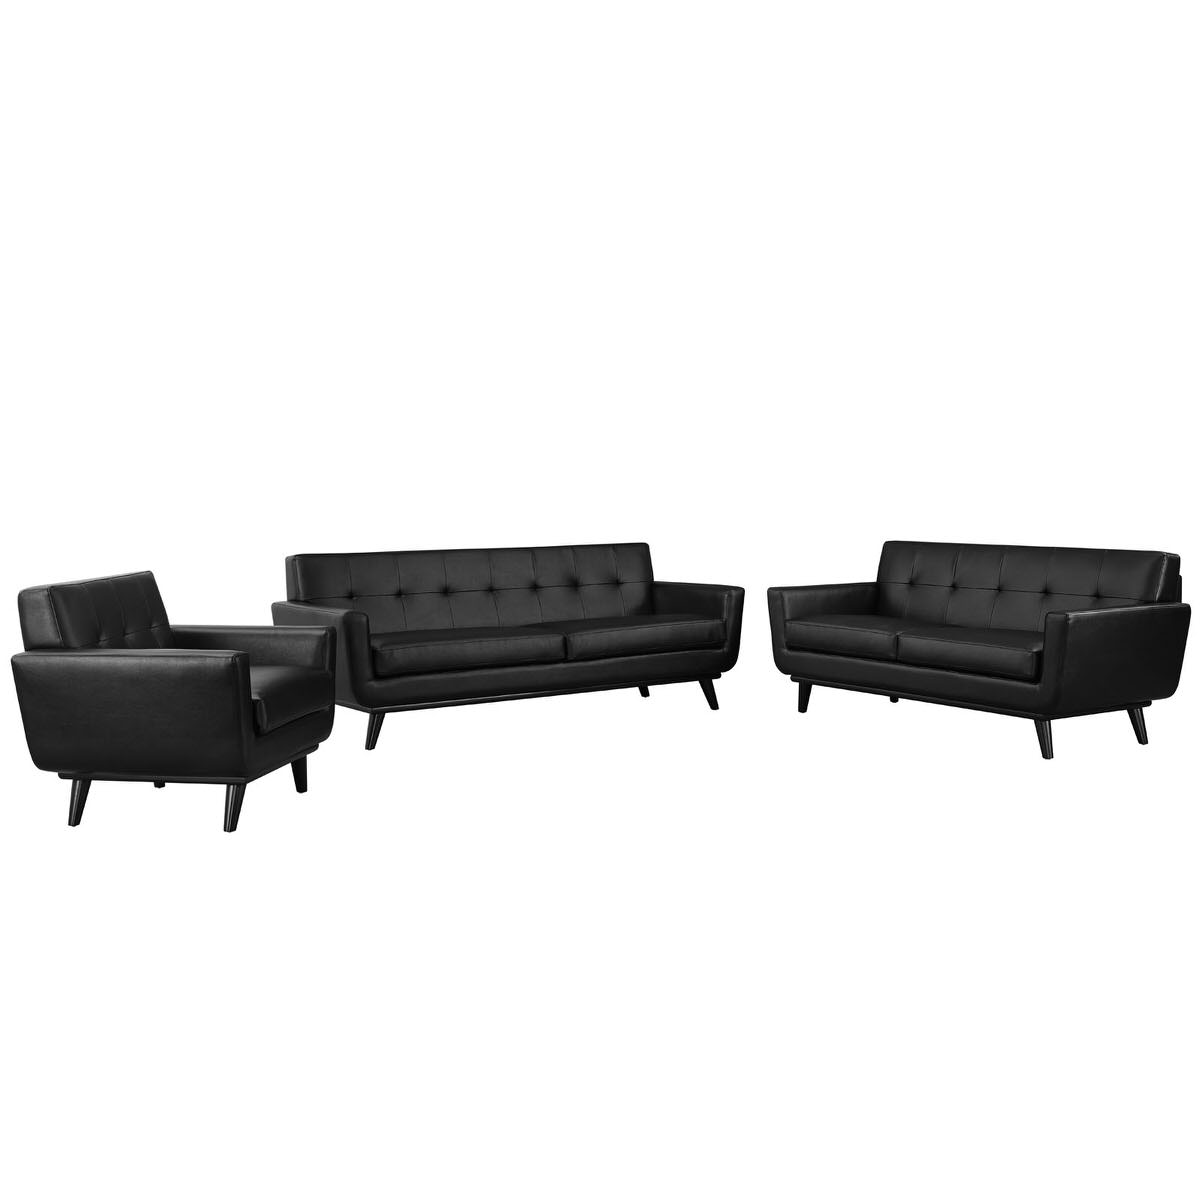 Engage 3 Piece Leather Living Room Set Black by Modern Living